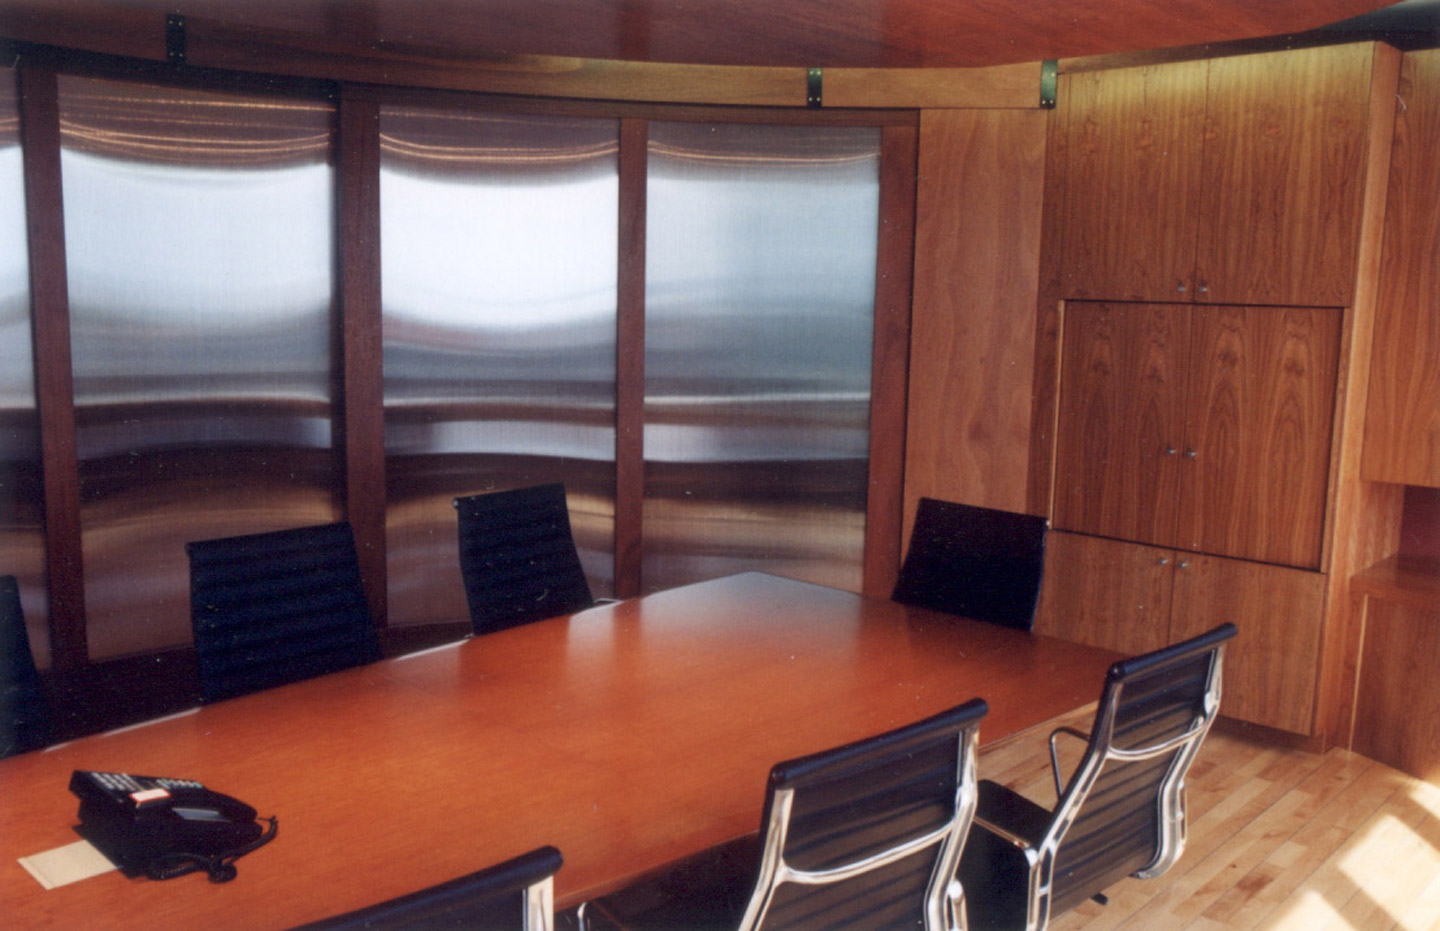 Office meeting room with custom cabinetry and wall panels, with sliding doors for privacy